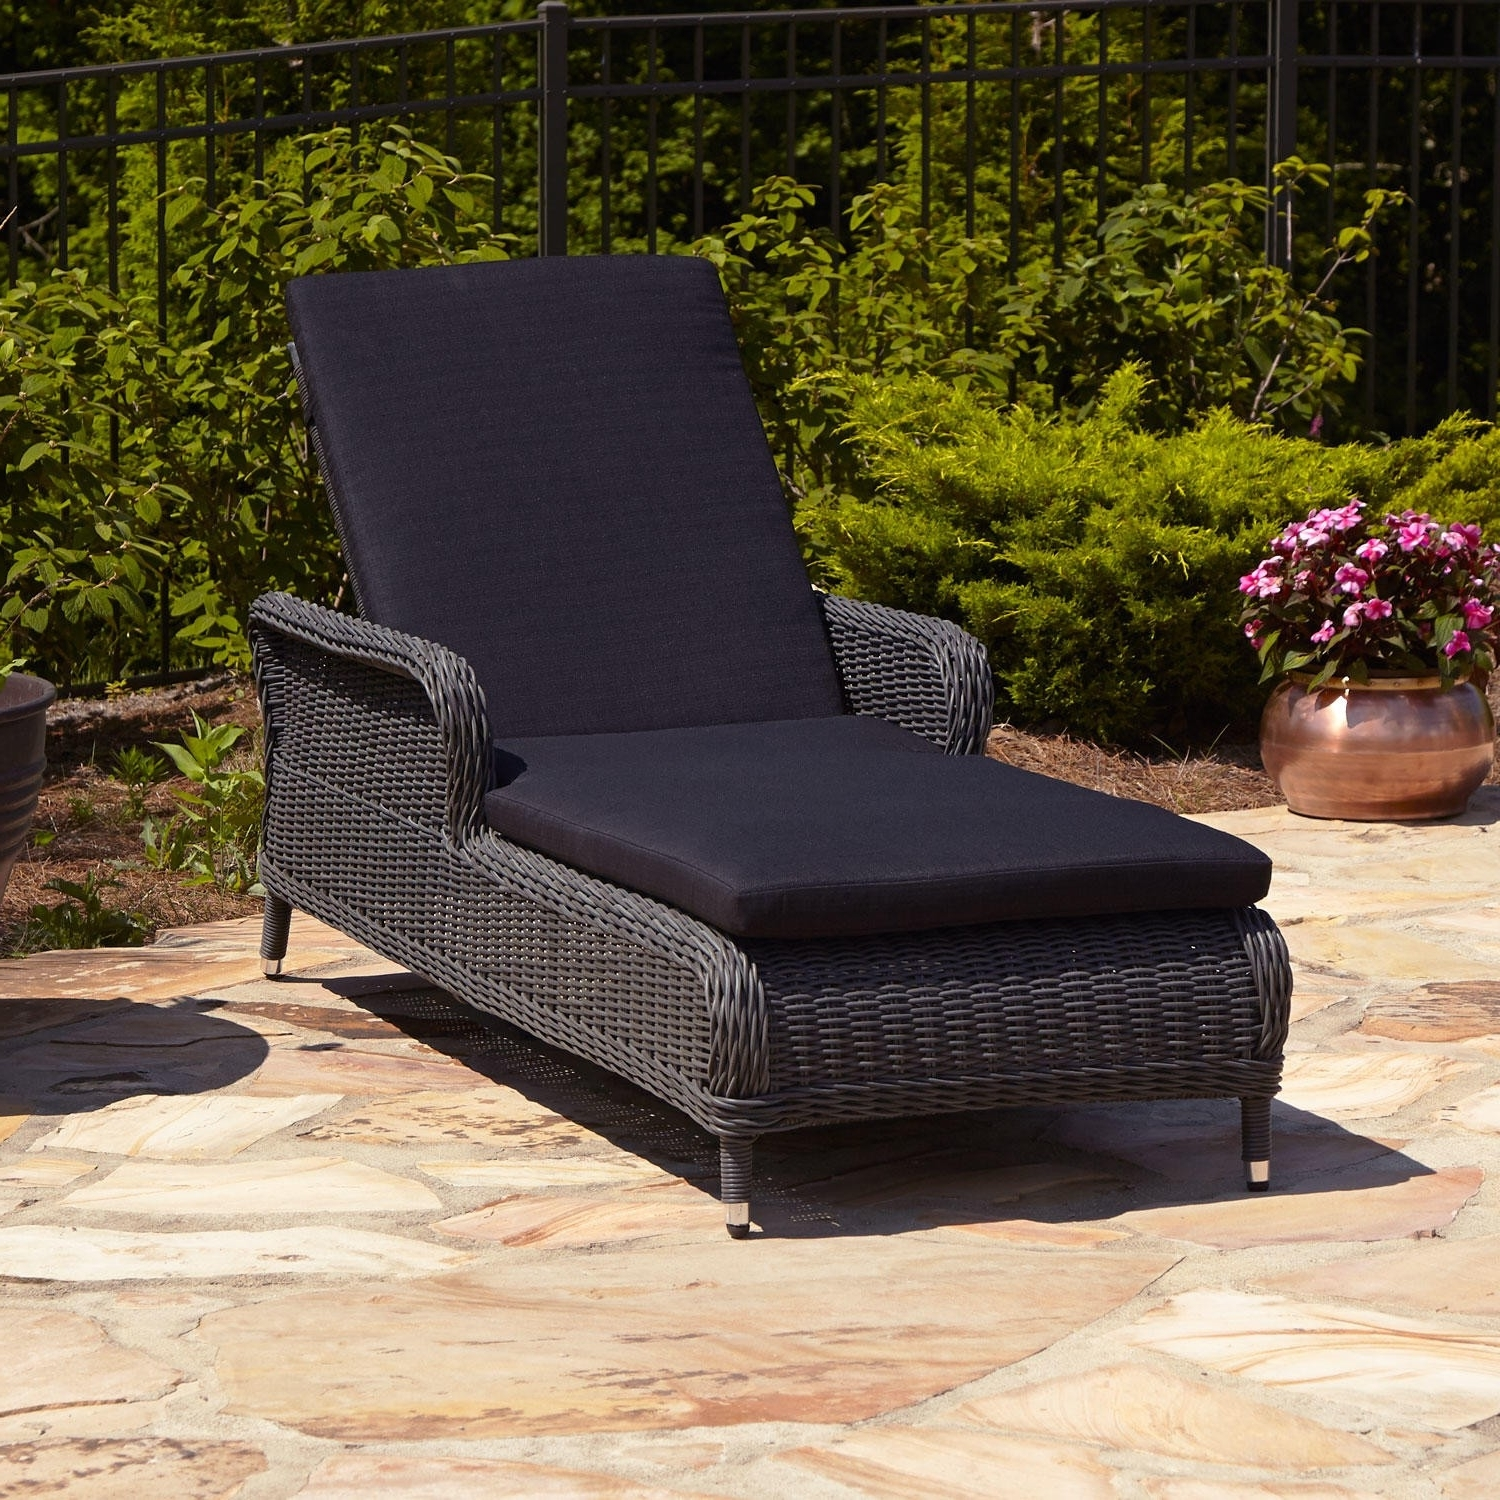 Remarkable Wicker Chaise Lounge Chair Gray Patio Furniture All Throughout Recent Wicker Outdoor Chaise Lounges (View 14 of 15)